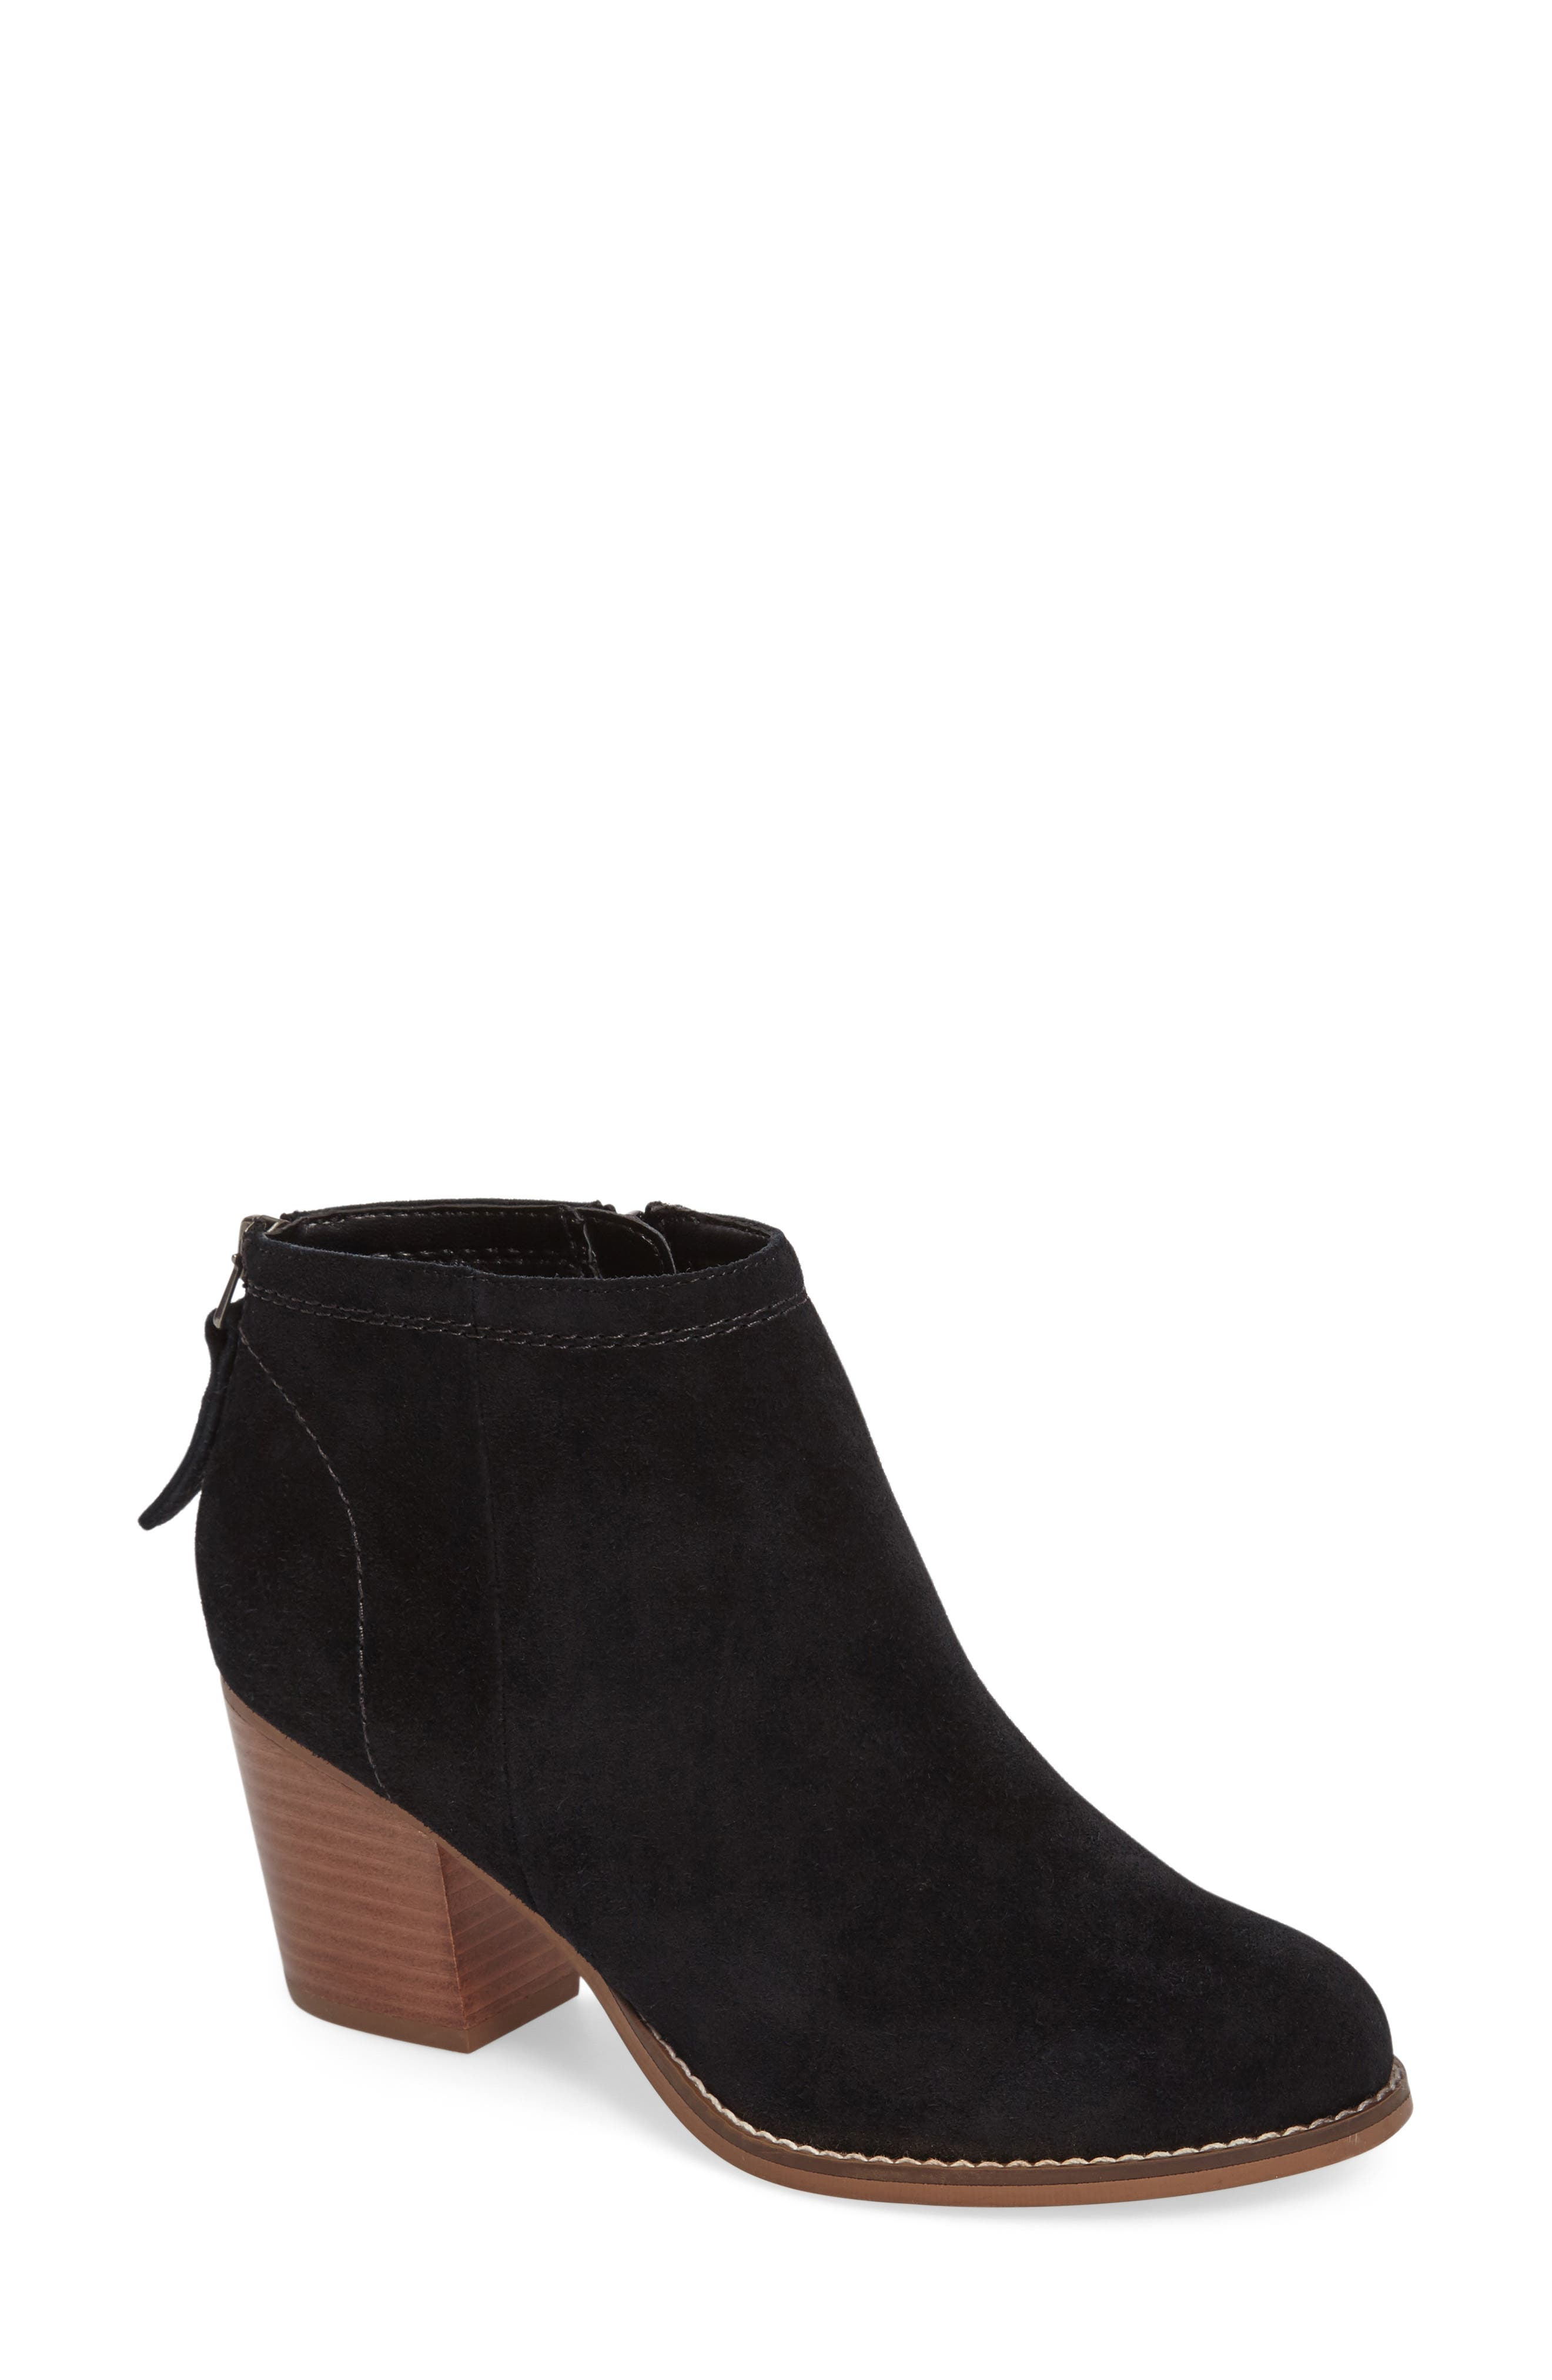 Main Image - Sole Society Eloise Bootie (Women)